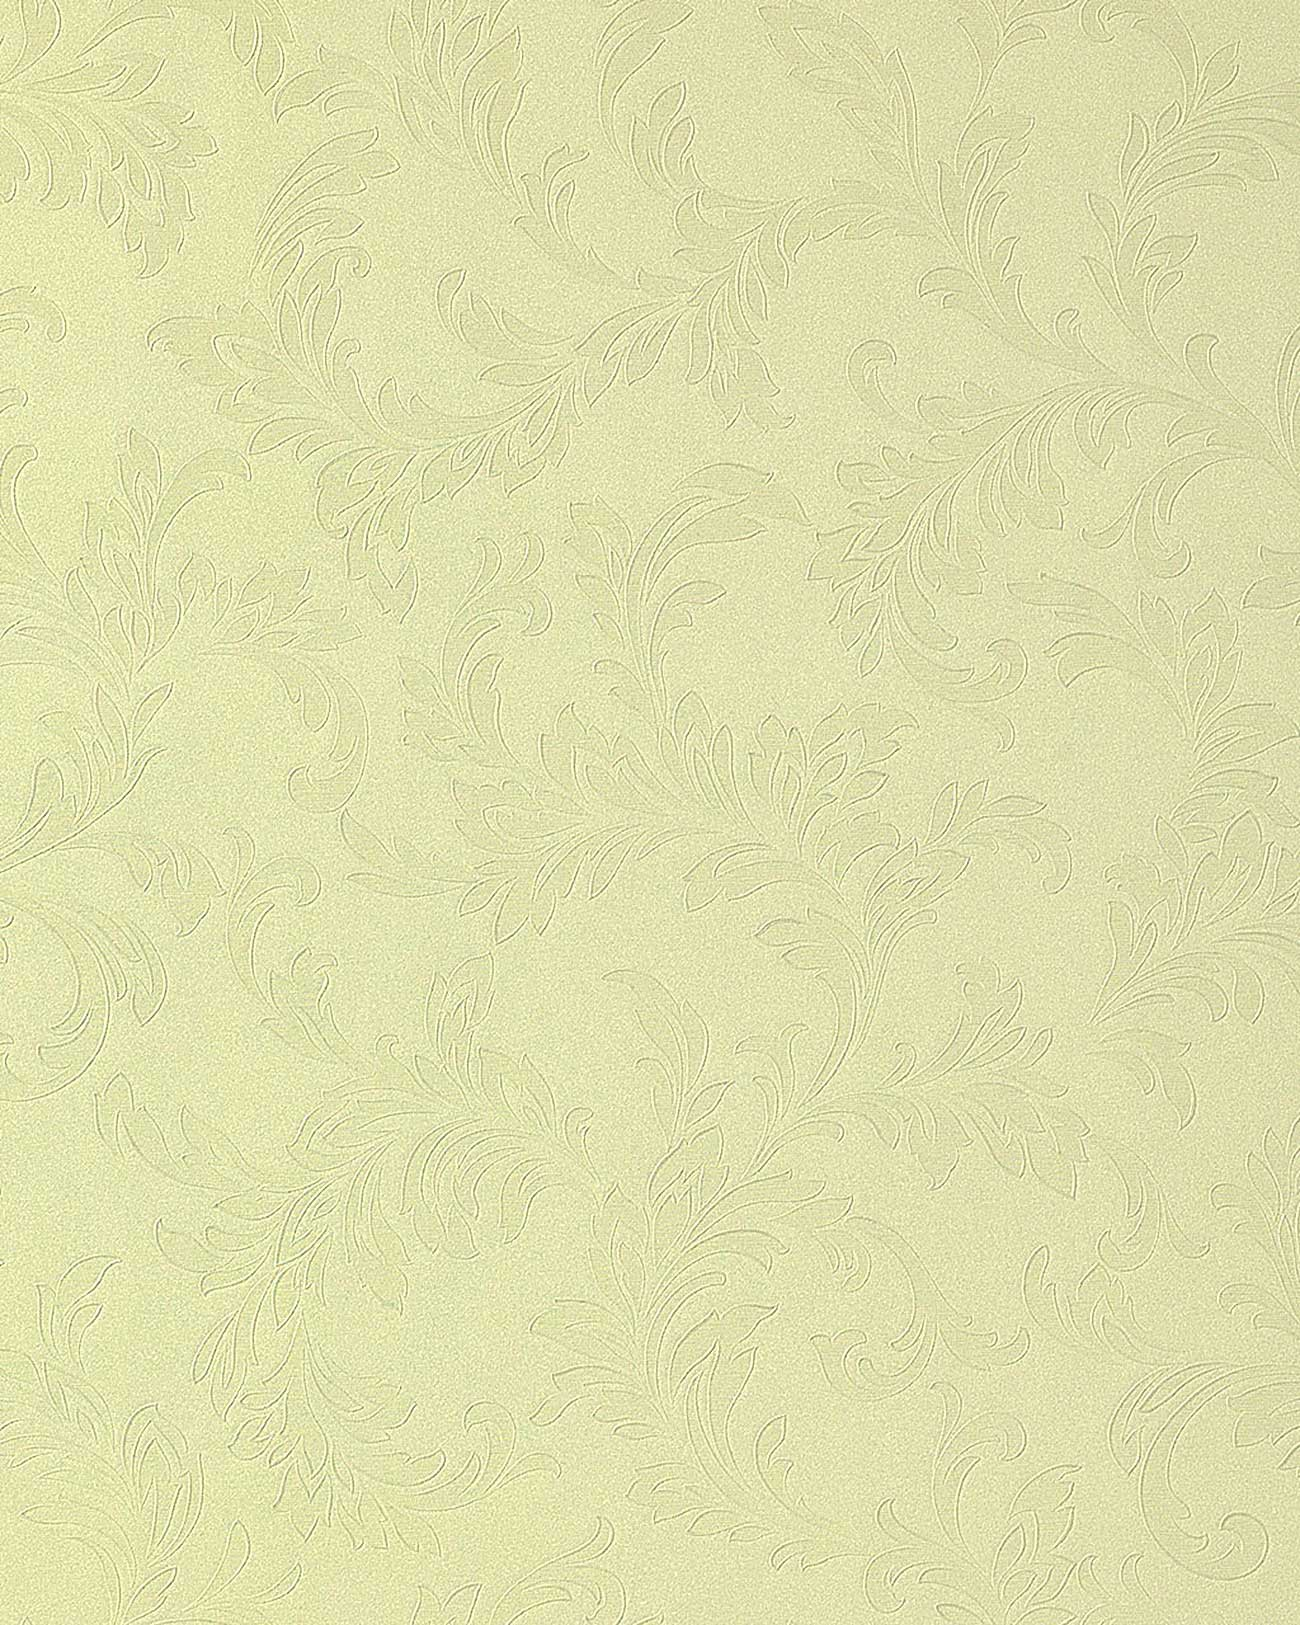 papier peint motif floral edem 762 28 ton sur ton jaune pastel vanille m2. Black Bedroom Furniture Sets. Home Design Ideas